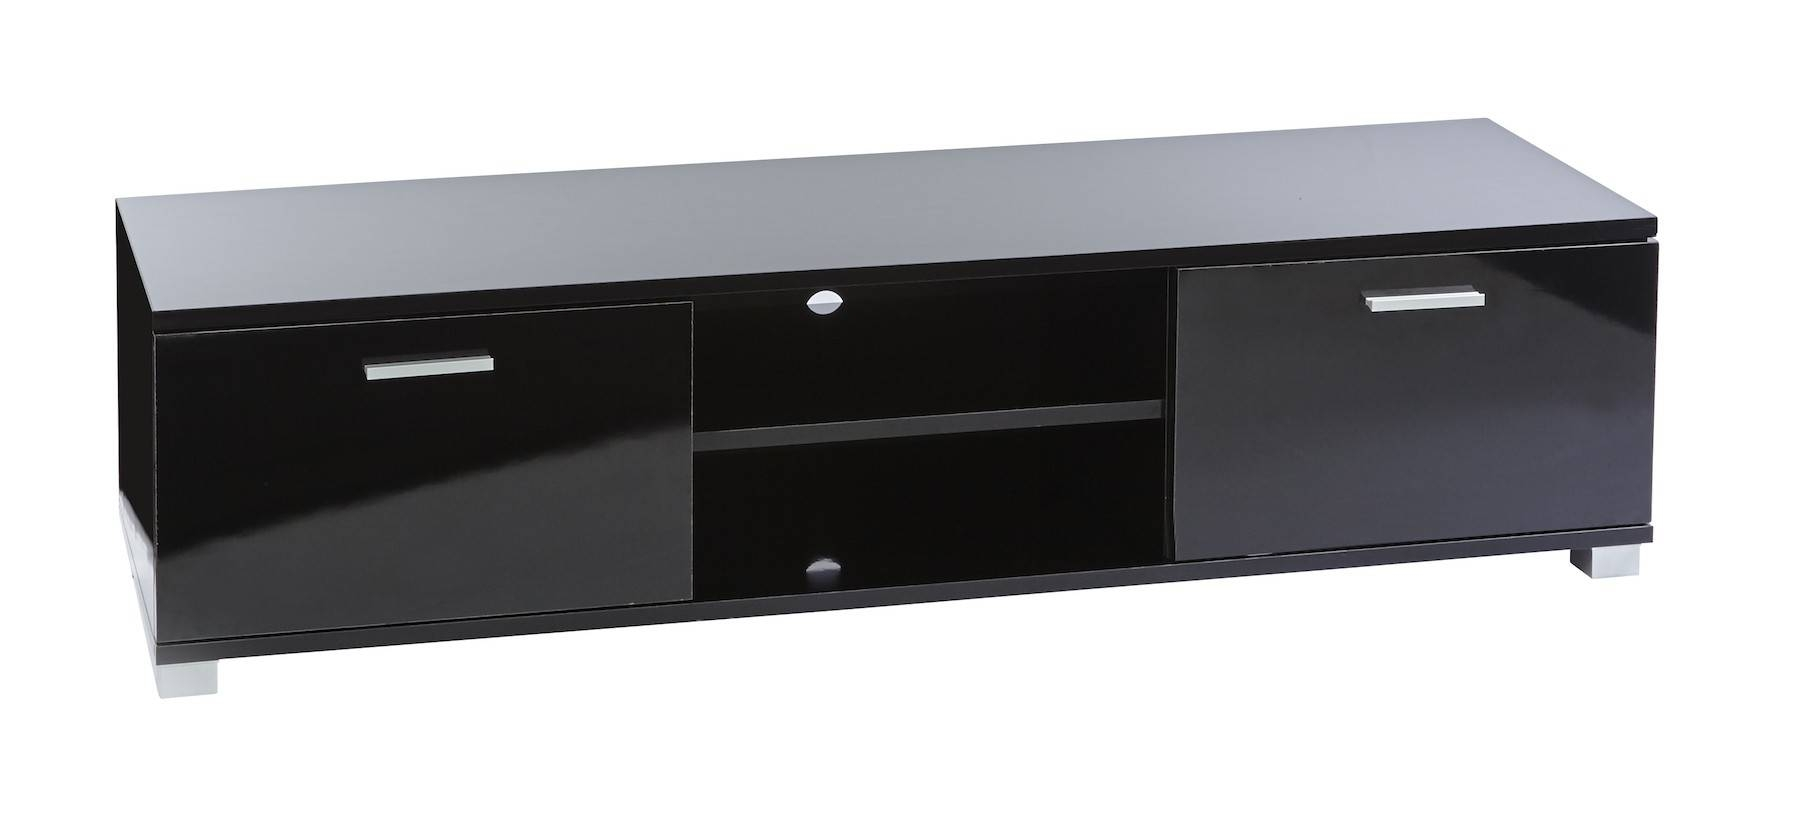 Sd-Ht01 Black Gloss Tv Cabinet For Up To 60 Inch Lcd Led Screens within Black Gloss Tv Cabinet (Image 11 of 15)